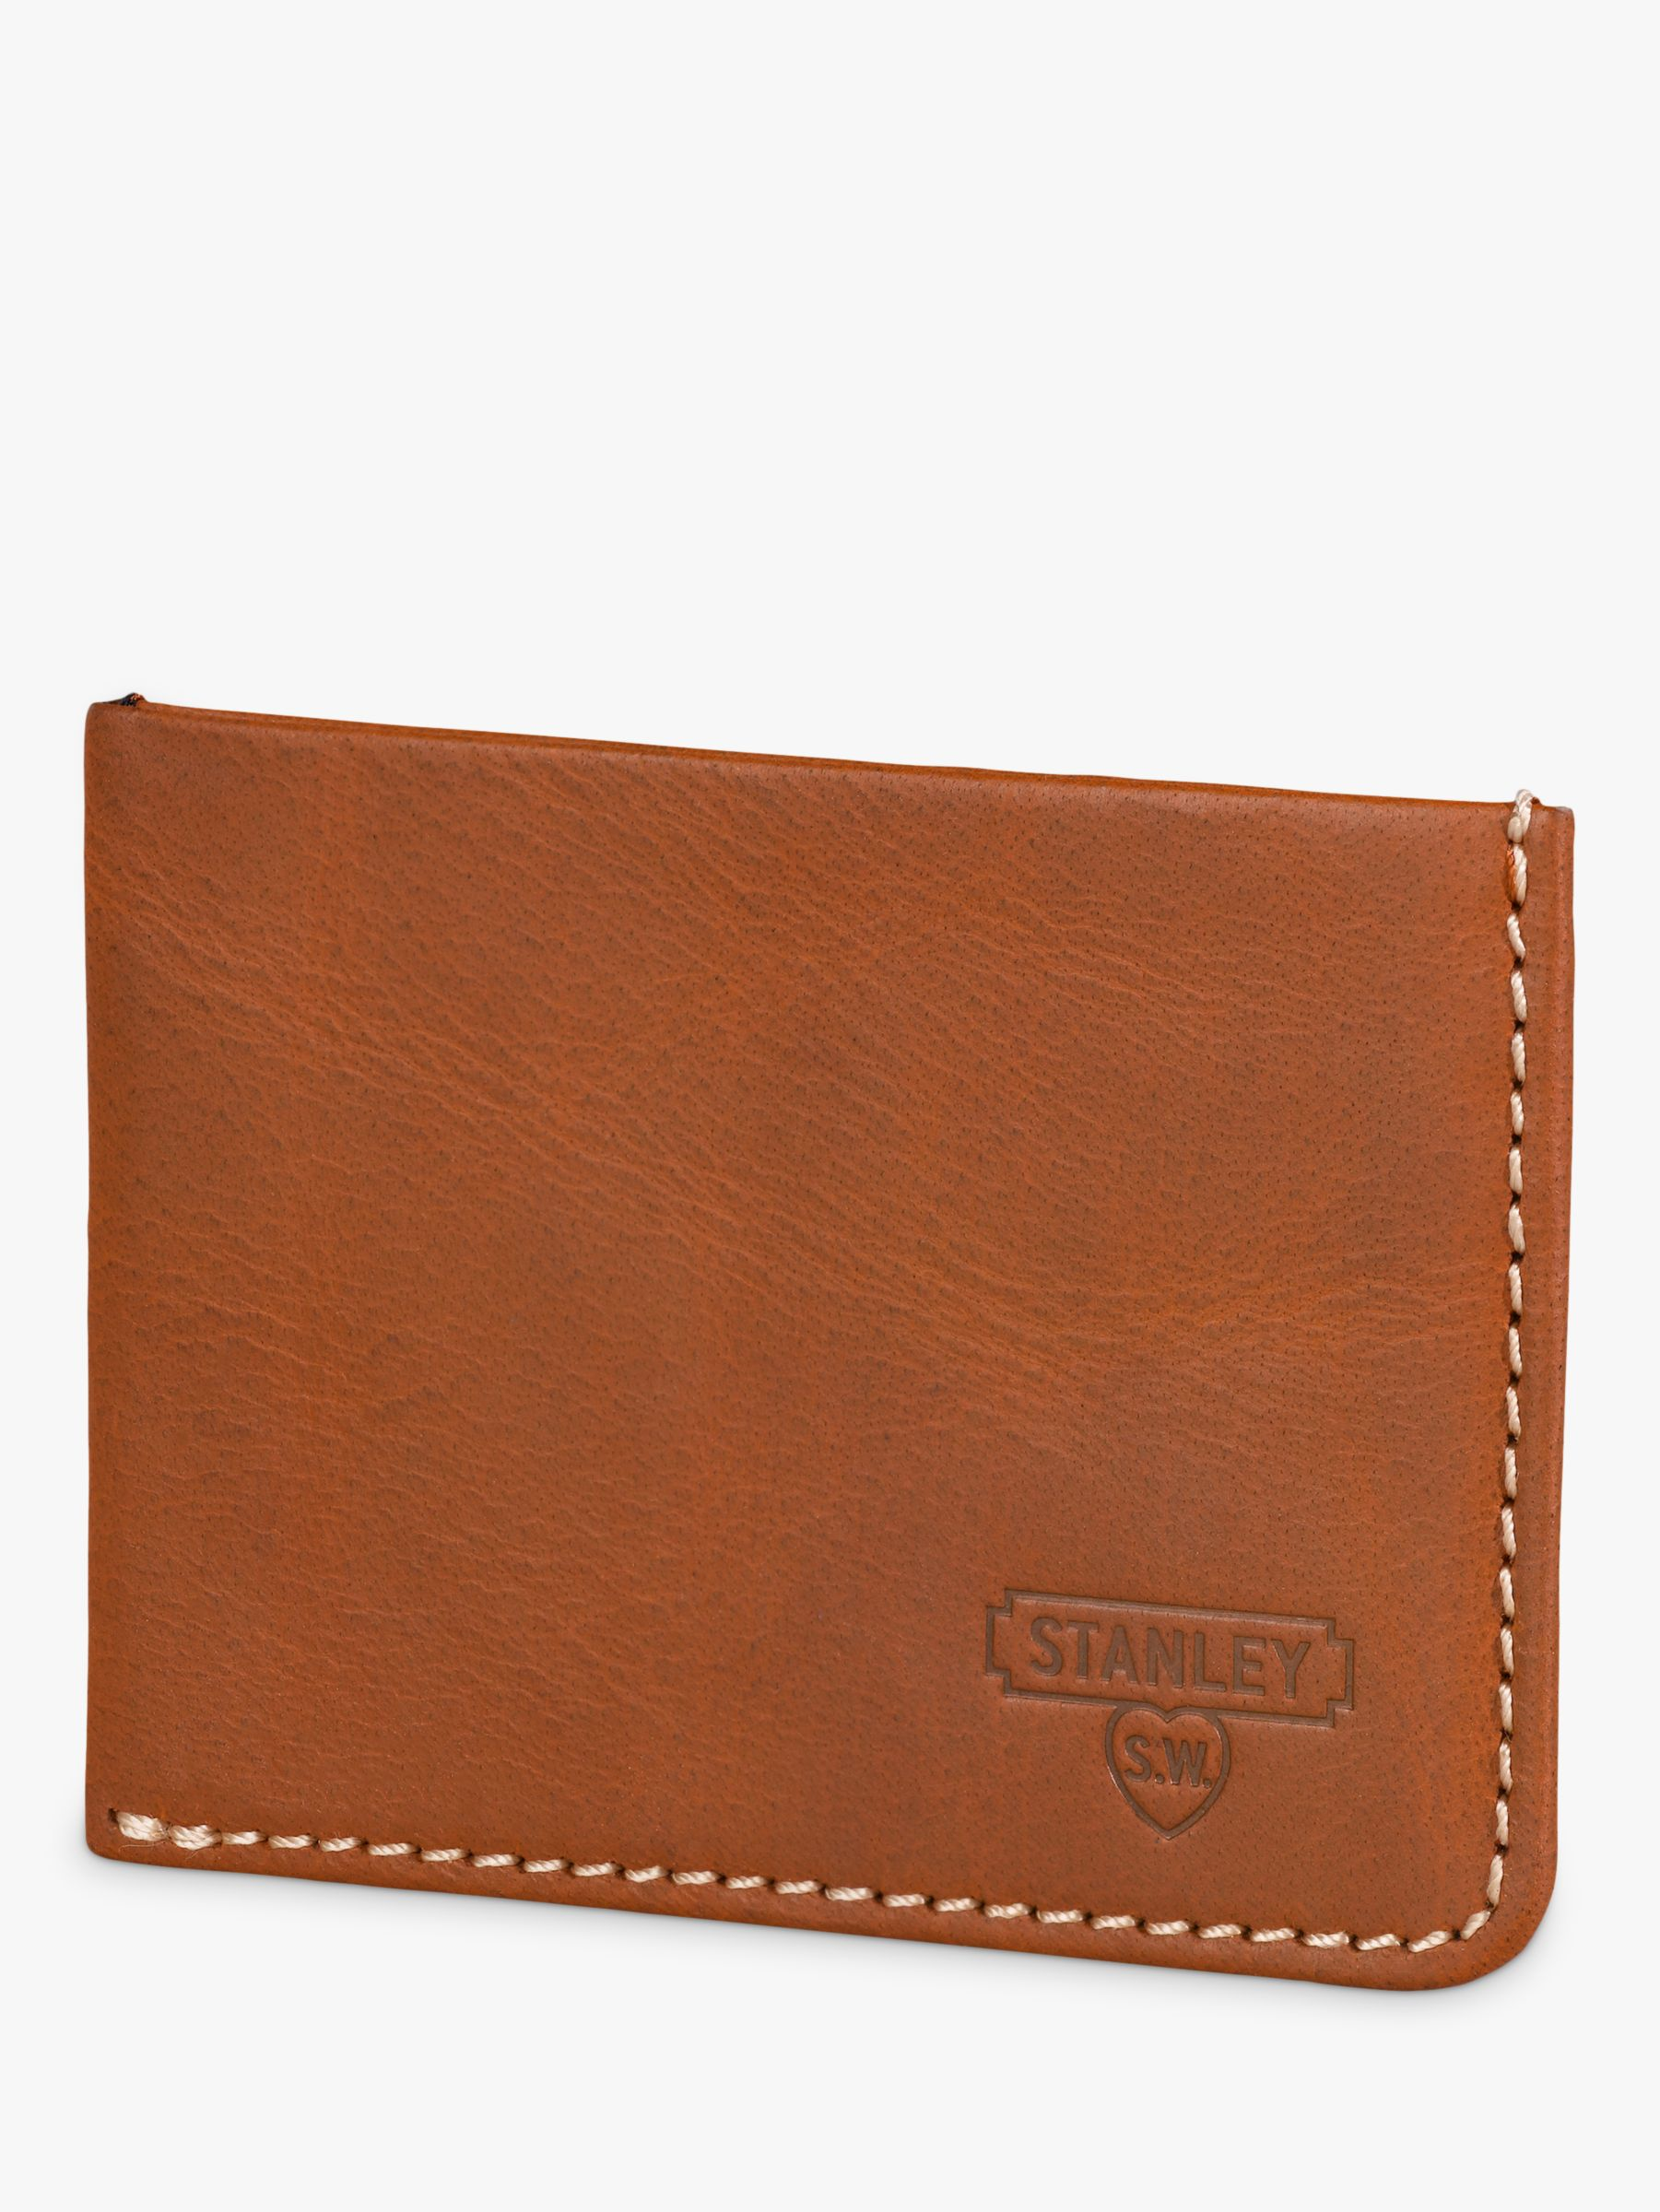 Stanley Stanley Leather Card Holder